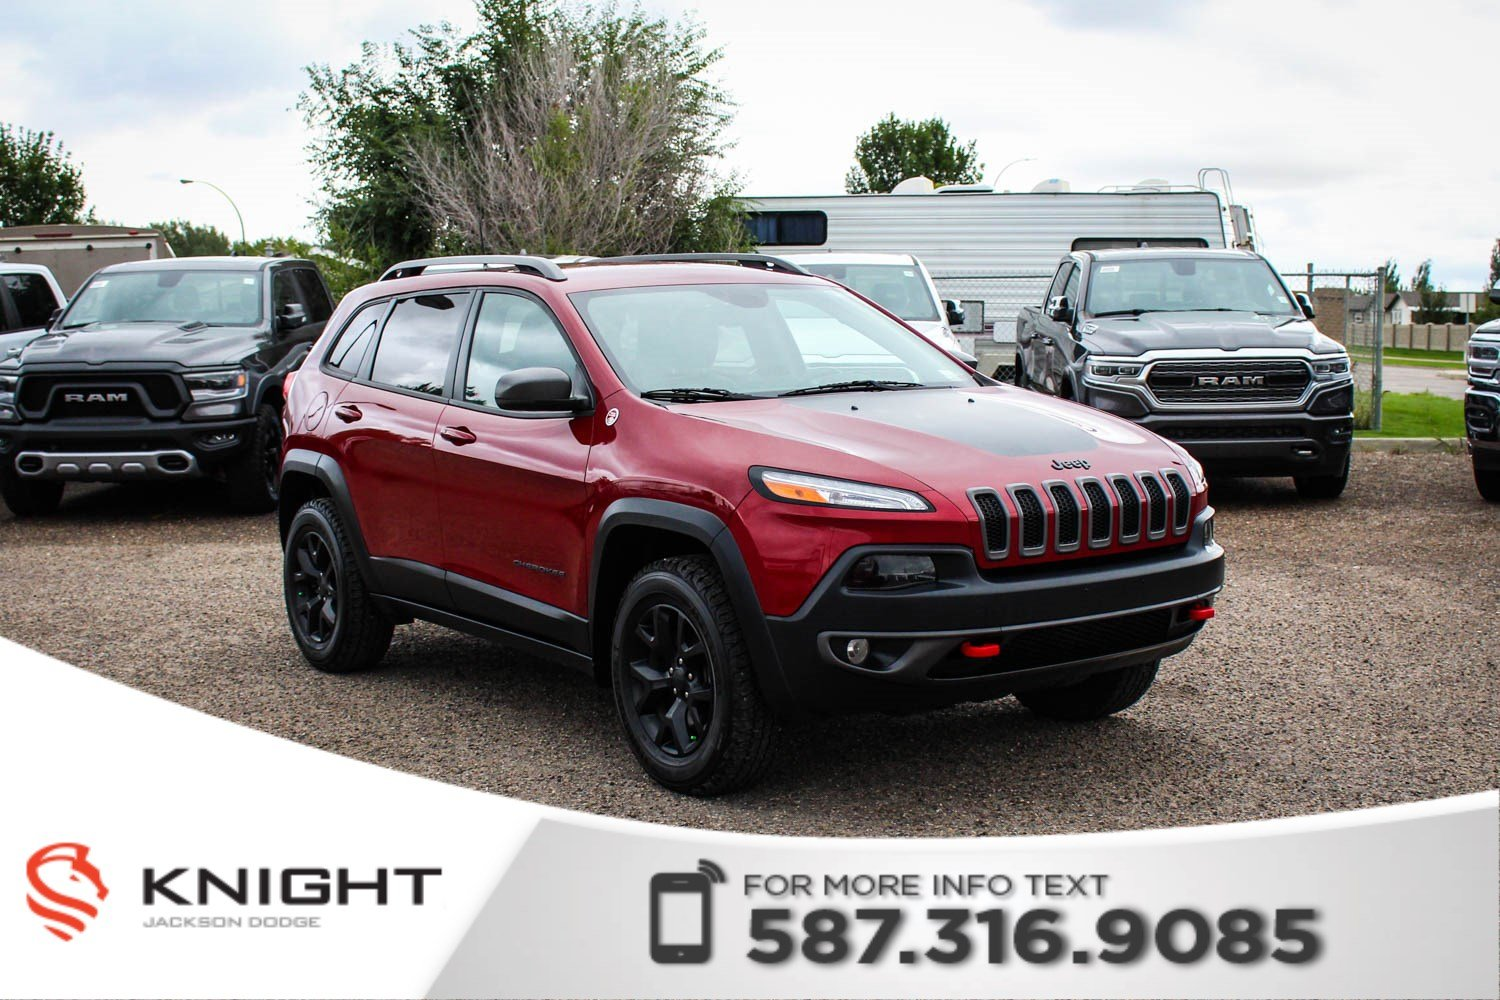 Pre-Owned 2017 Jeep Cherokee Trailhawk - NAV, Rear Parking Sensors, Leather